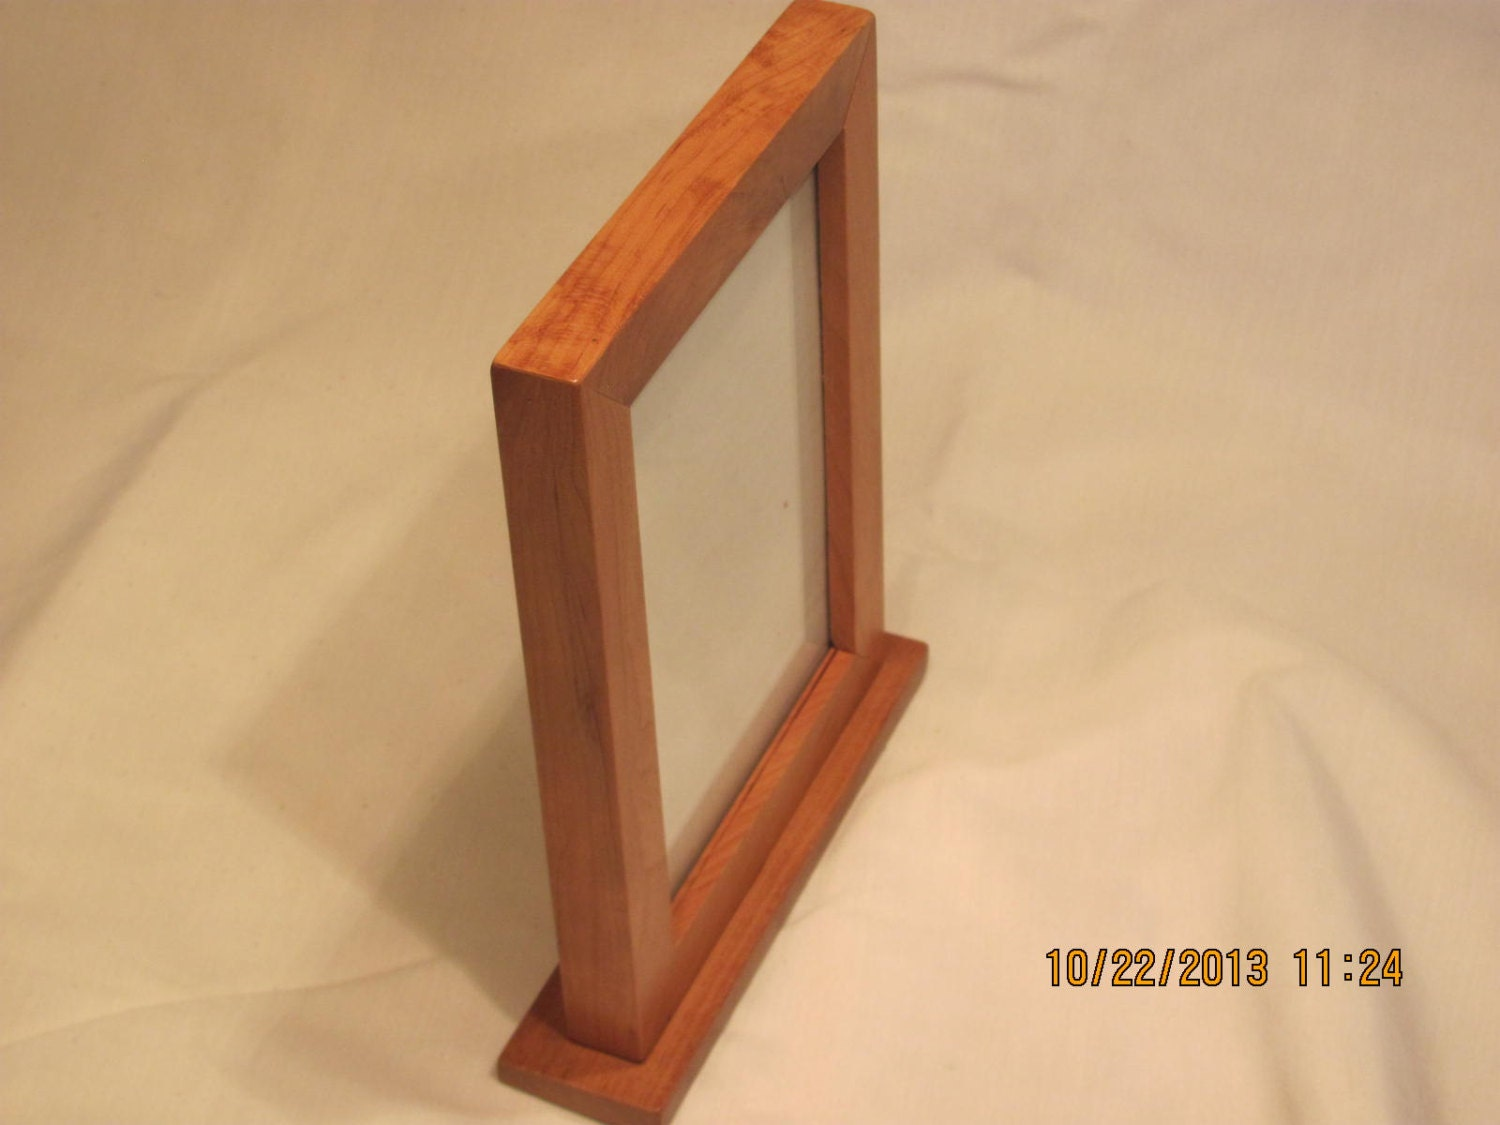 5x7 picture frame 5x7 frame wood picture frame by zimwoodworking. Black Bedroom Furniture Sets. Home Design Ideas